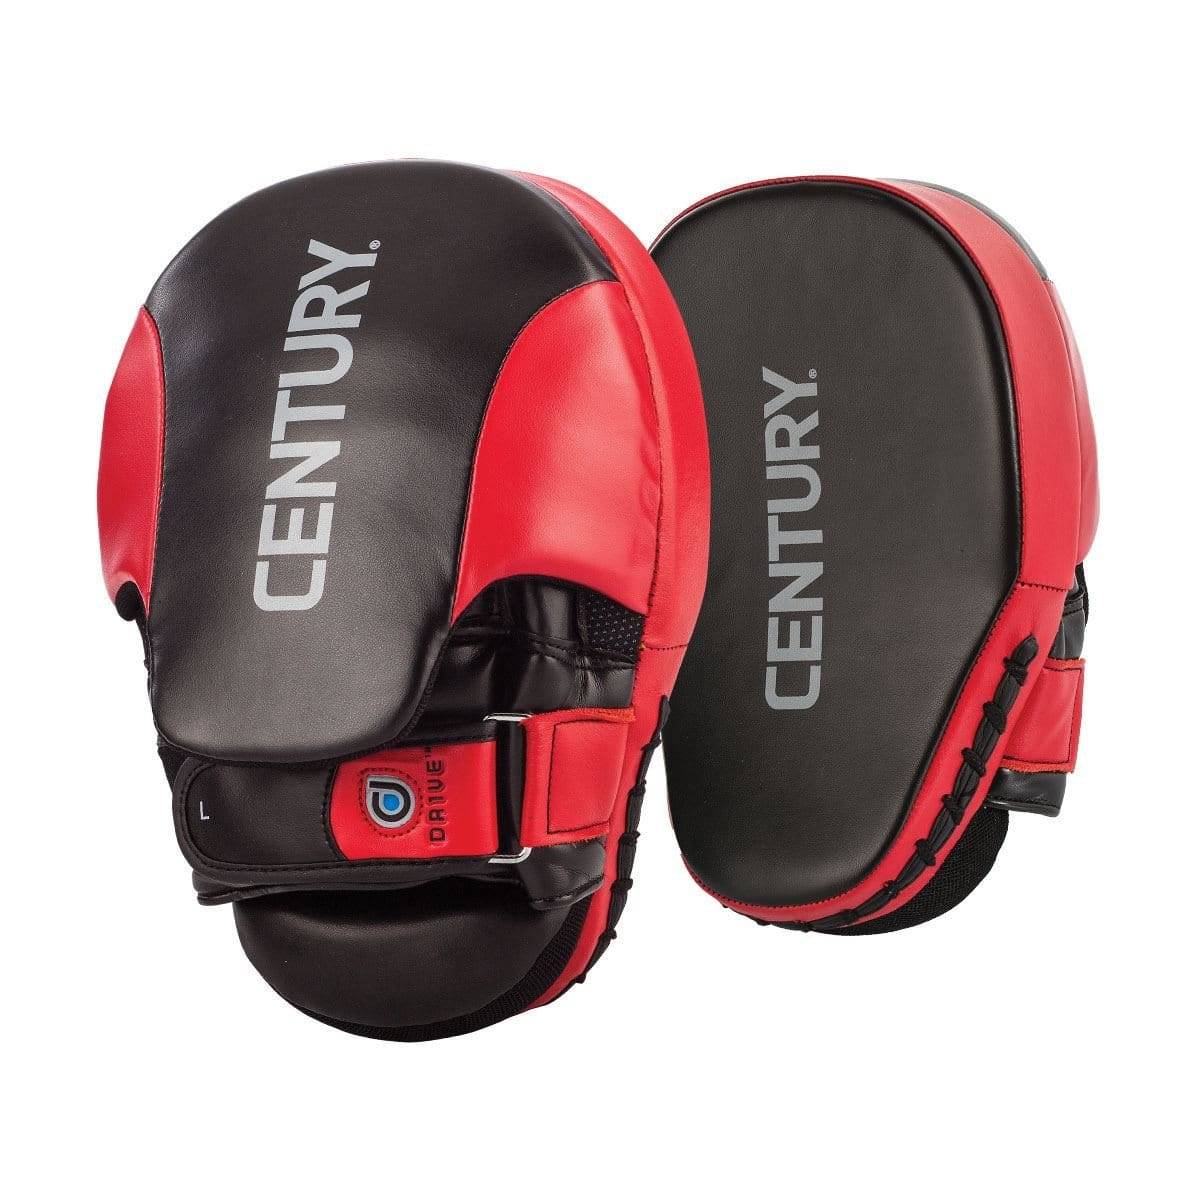 Century DRIVE Curved Punch Mitts c141012p